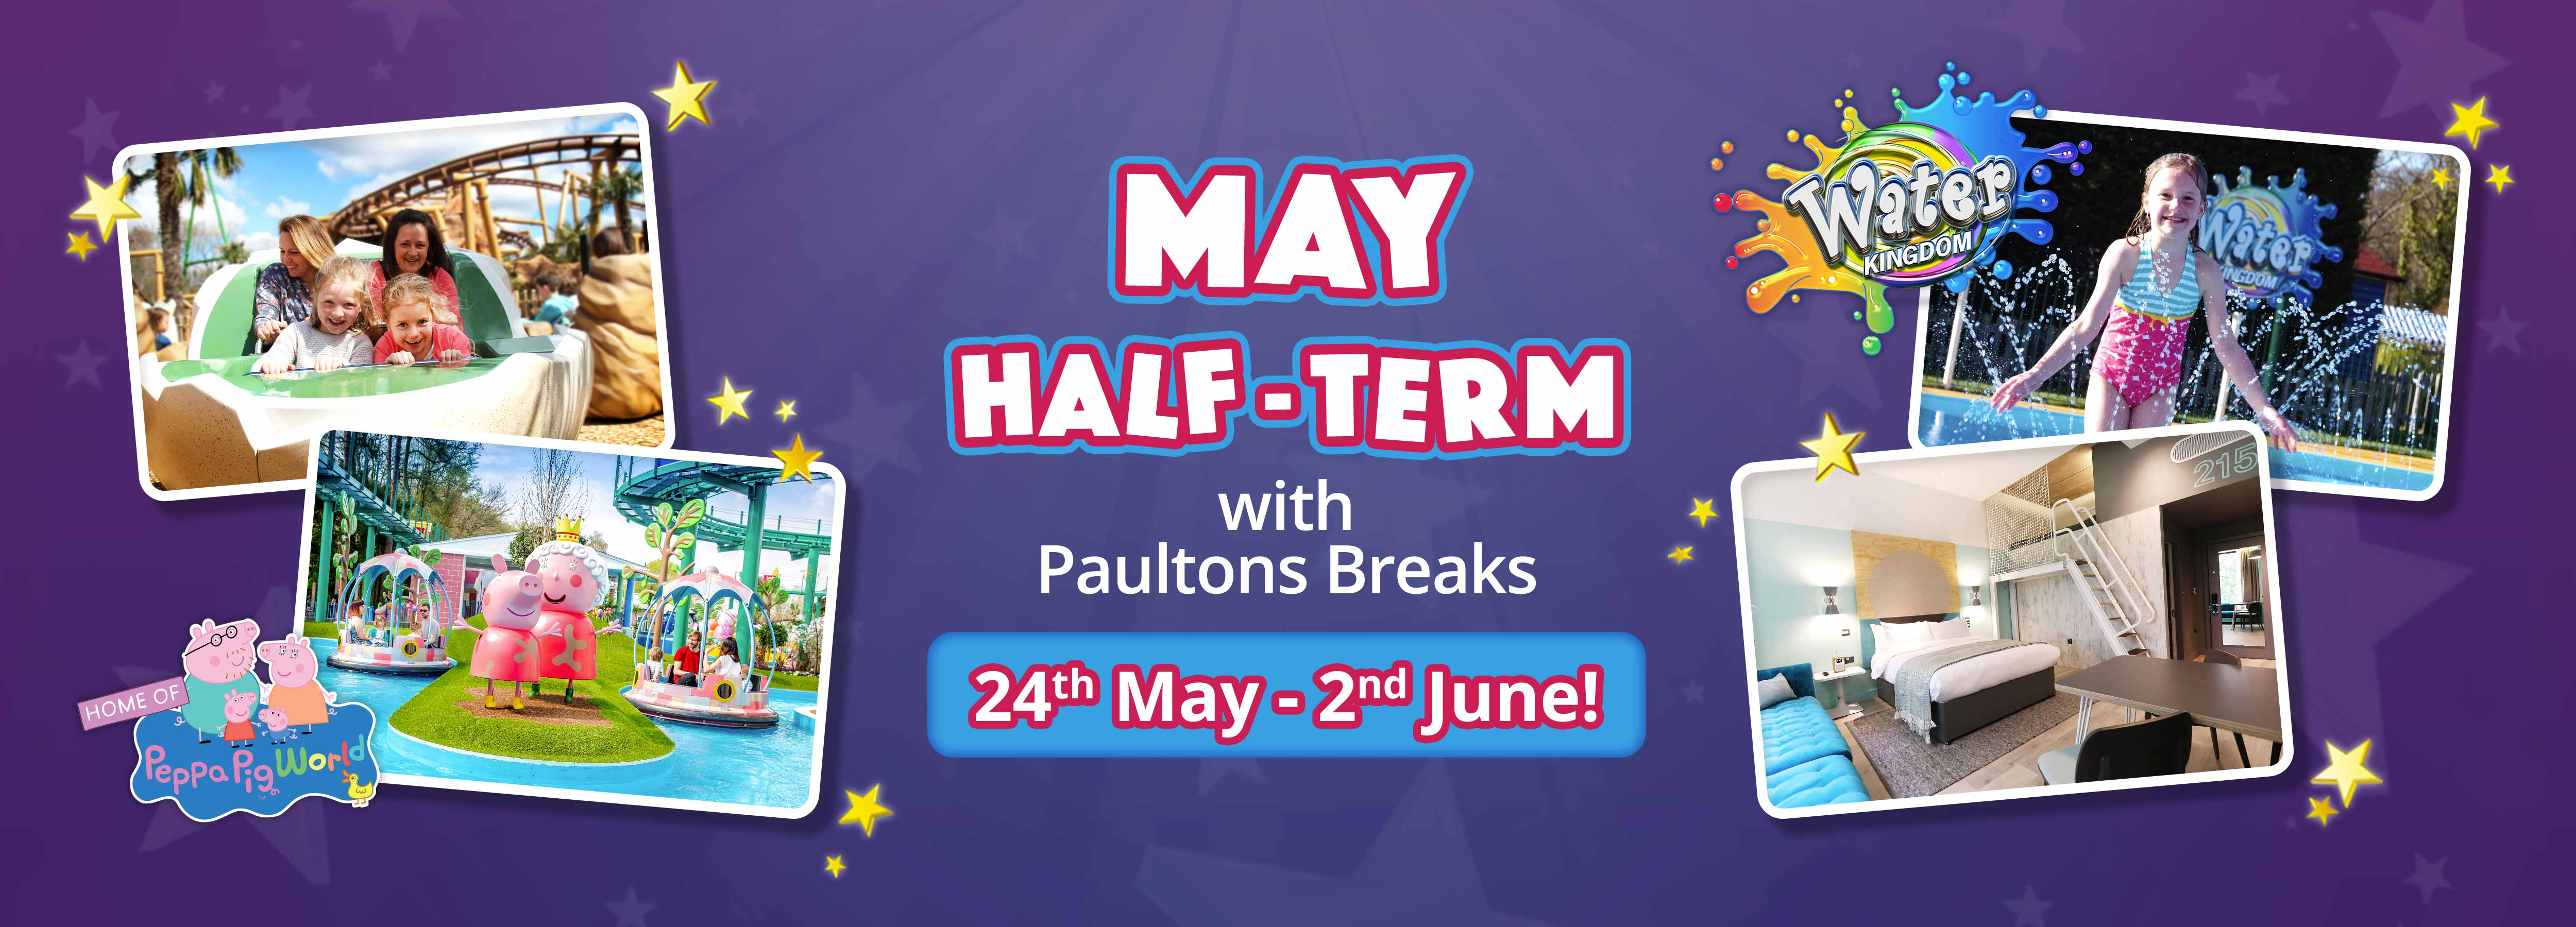 May Half Term Paultons Breaks